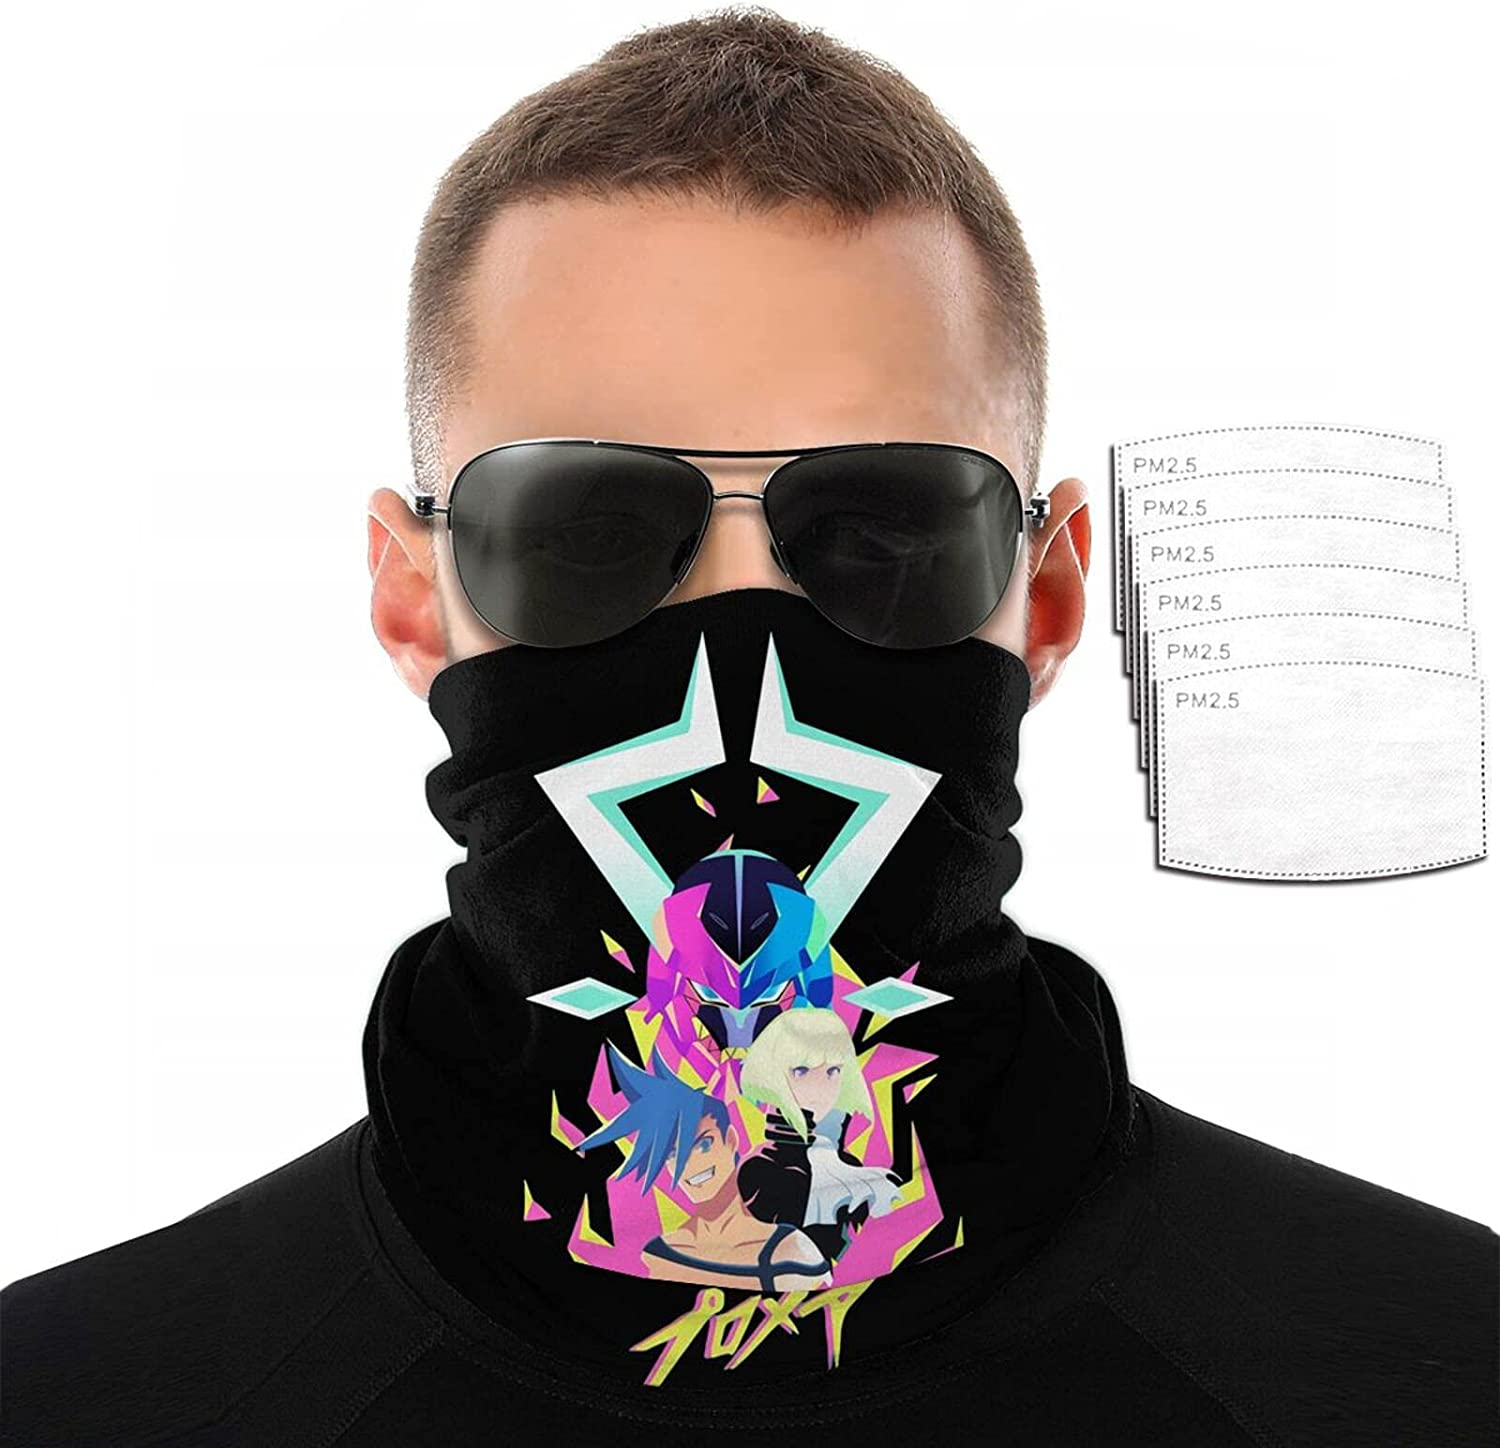 Anime Promare Variety Face Towel 3D Sun Over item Ranking TOP9 handling ☆ Printing Funny Pro Scarf